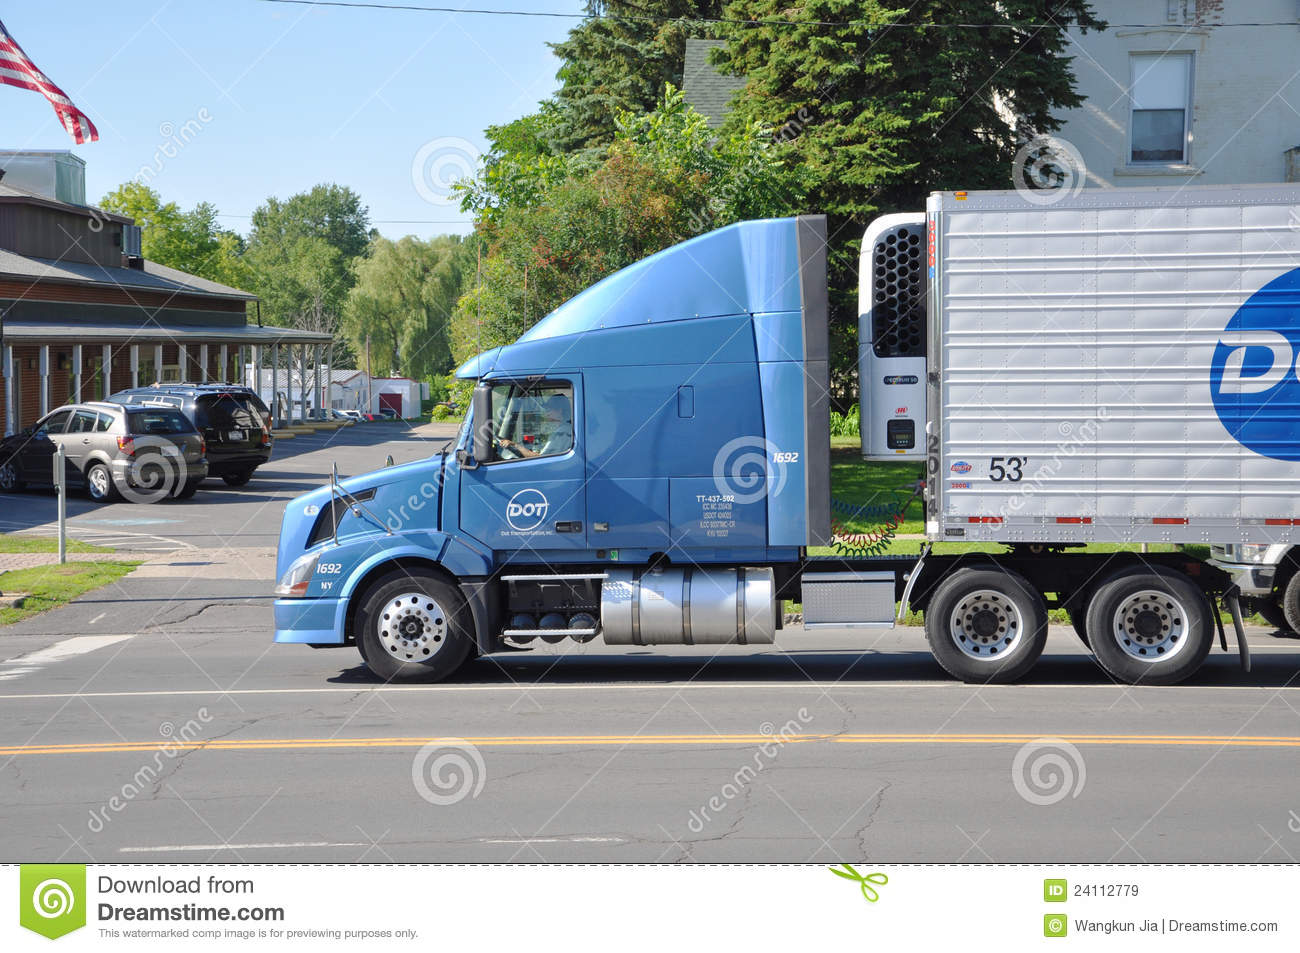 Volvo VN 630 Truck Side View Editorial Stock Image - Image: 24112779